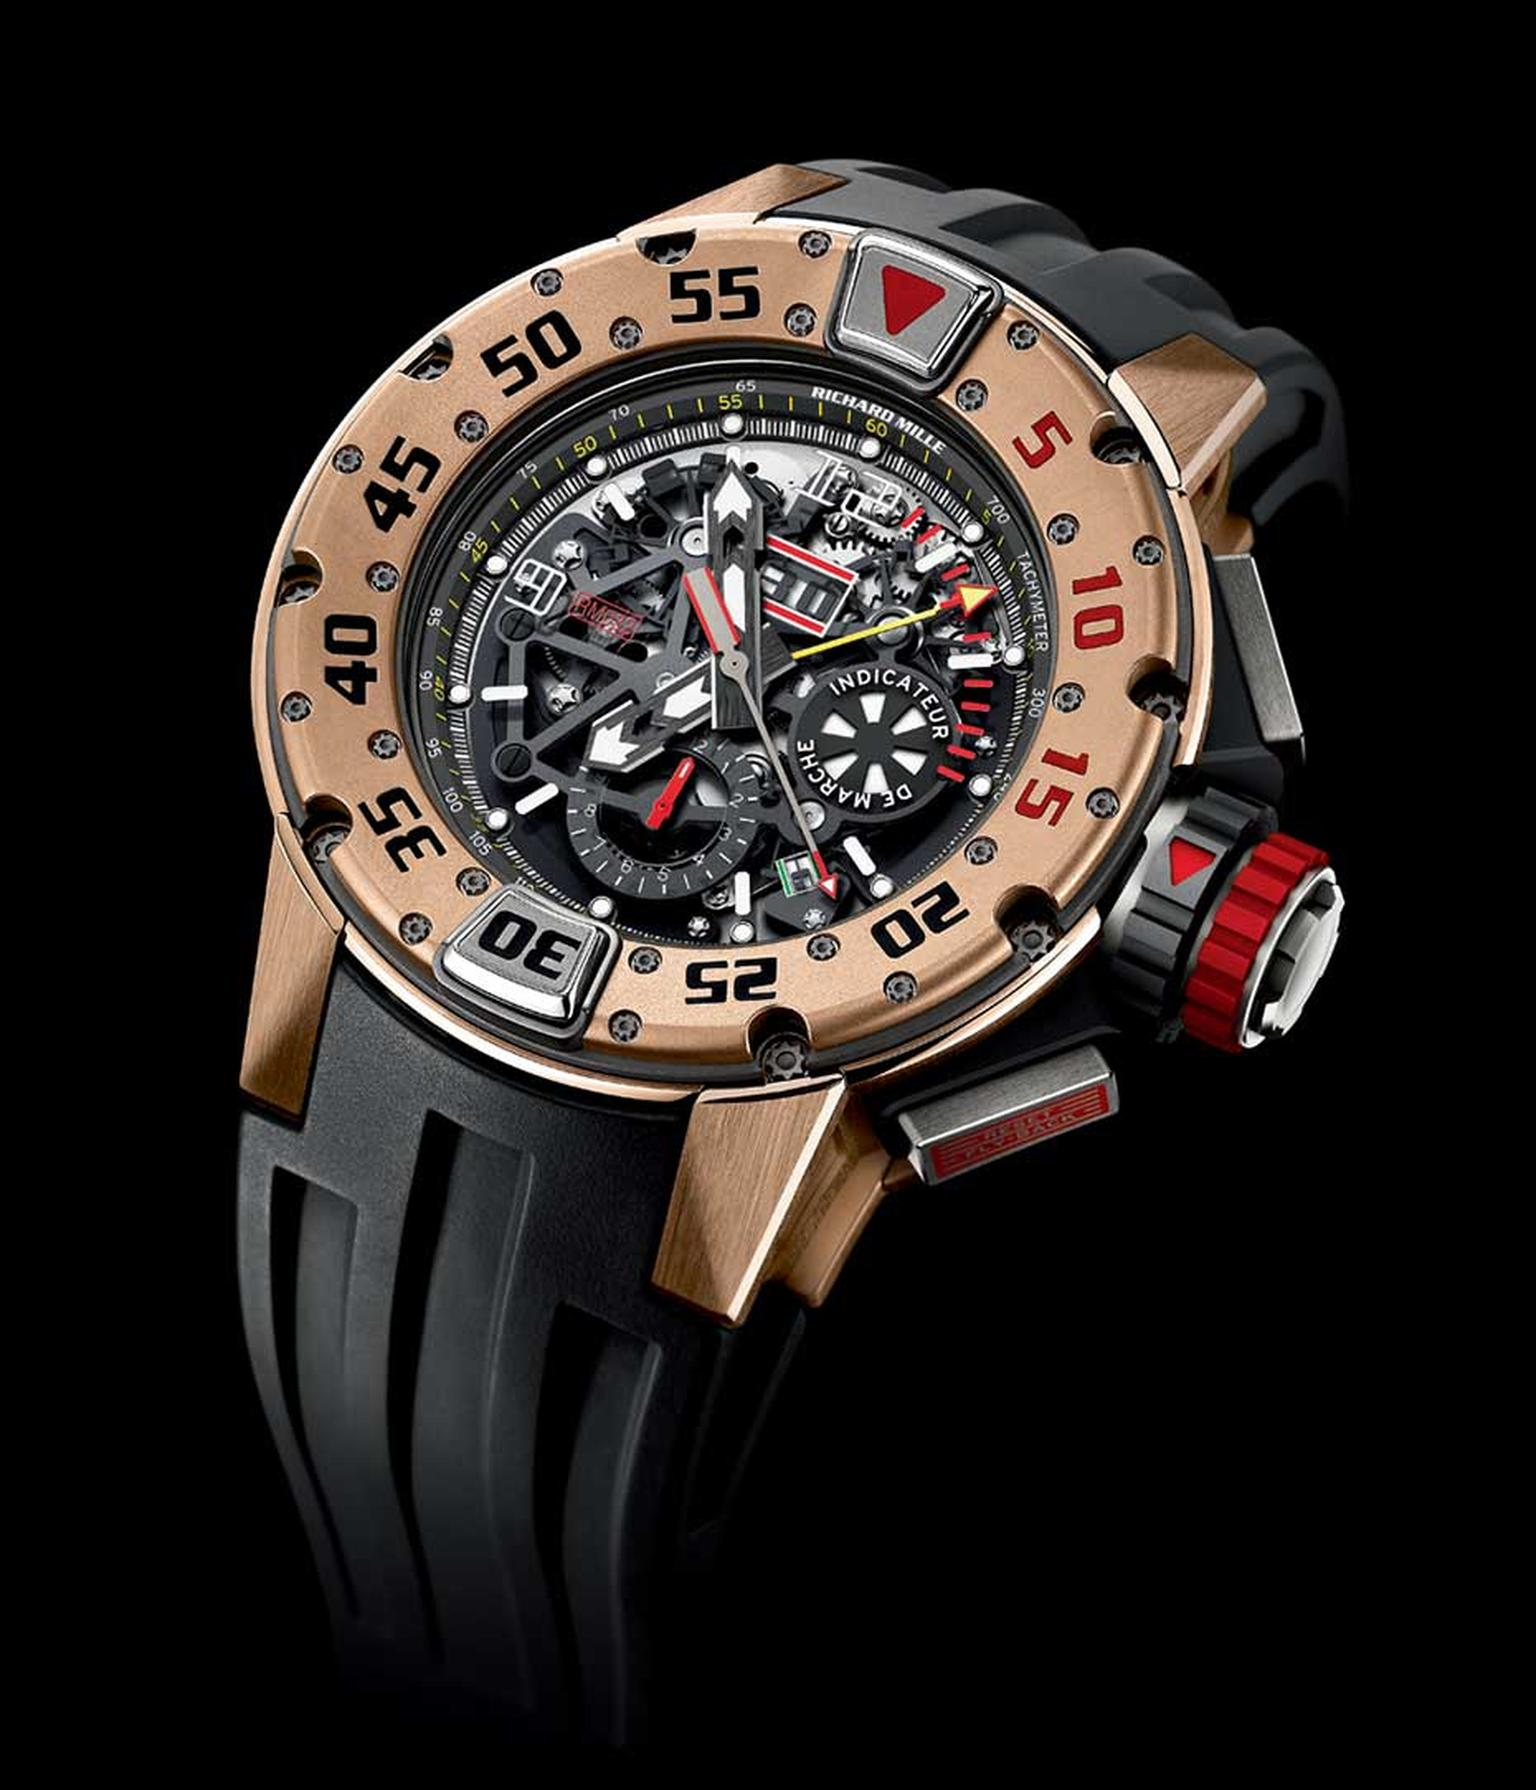 The new Richard Mille RM 032 automatic chronograph diver's watch in red gold